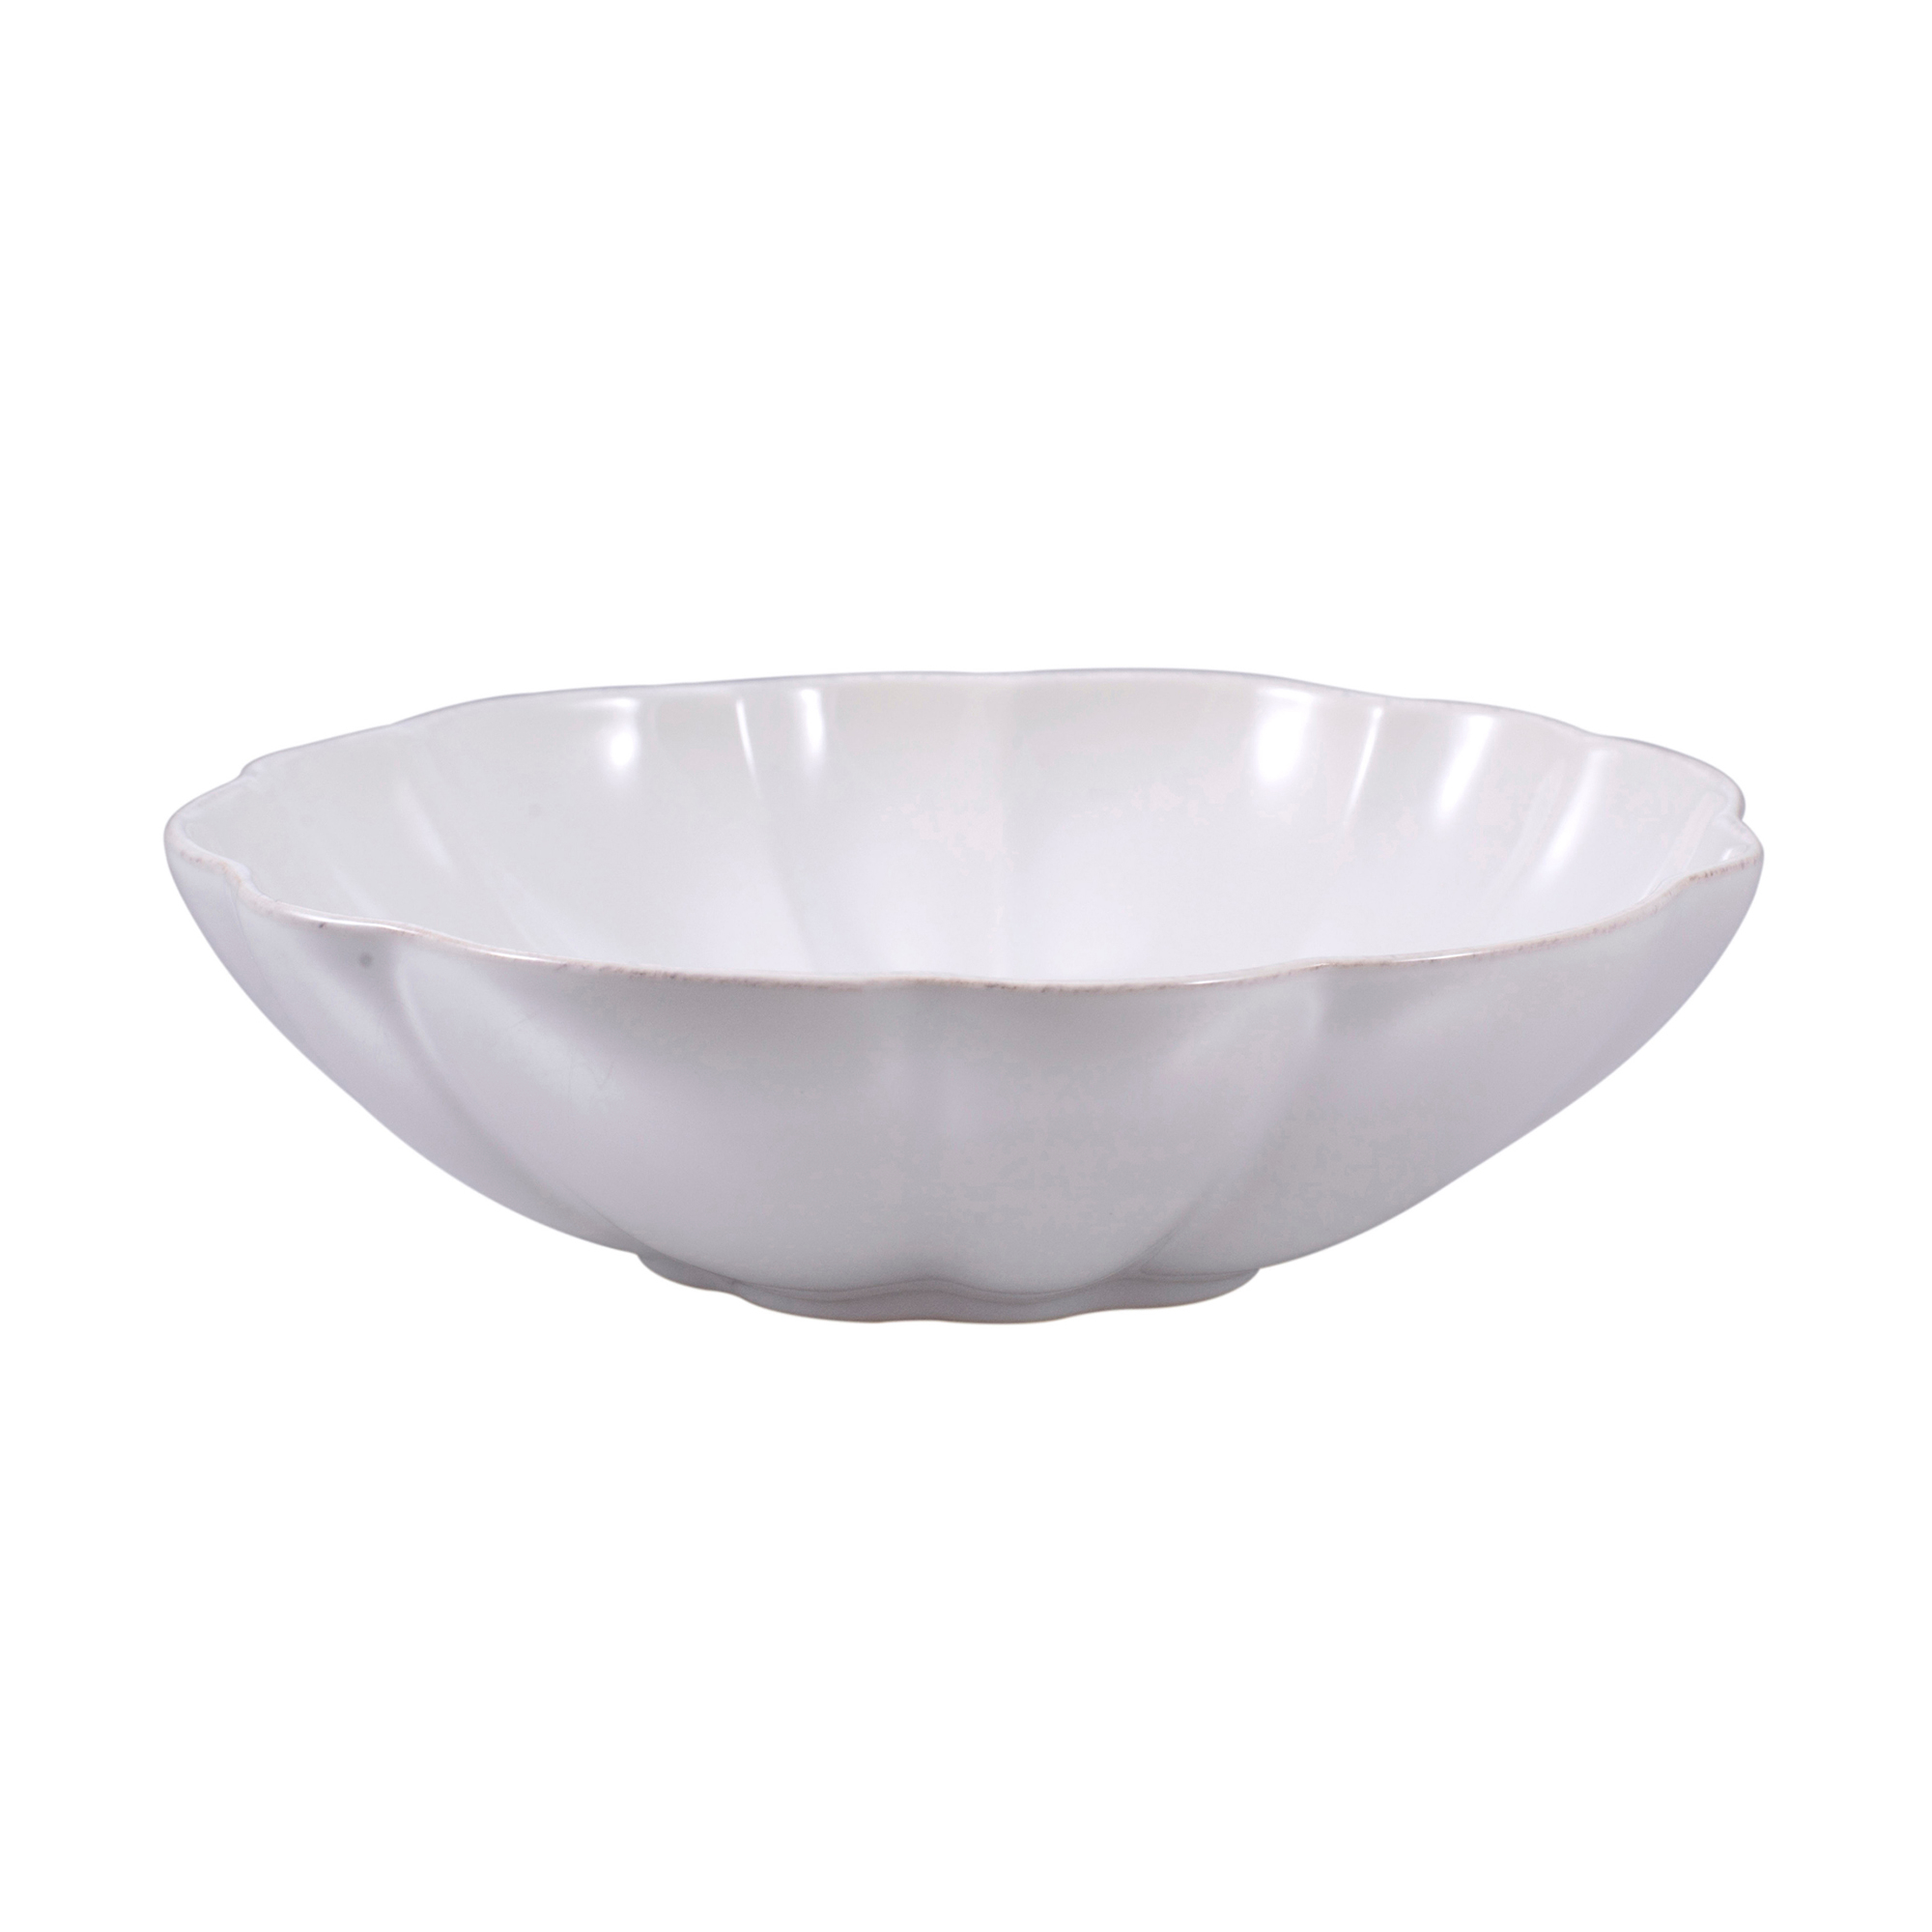 Simon Pearce Hartland Scallop Pasta Bowl